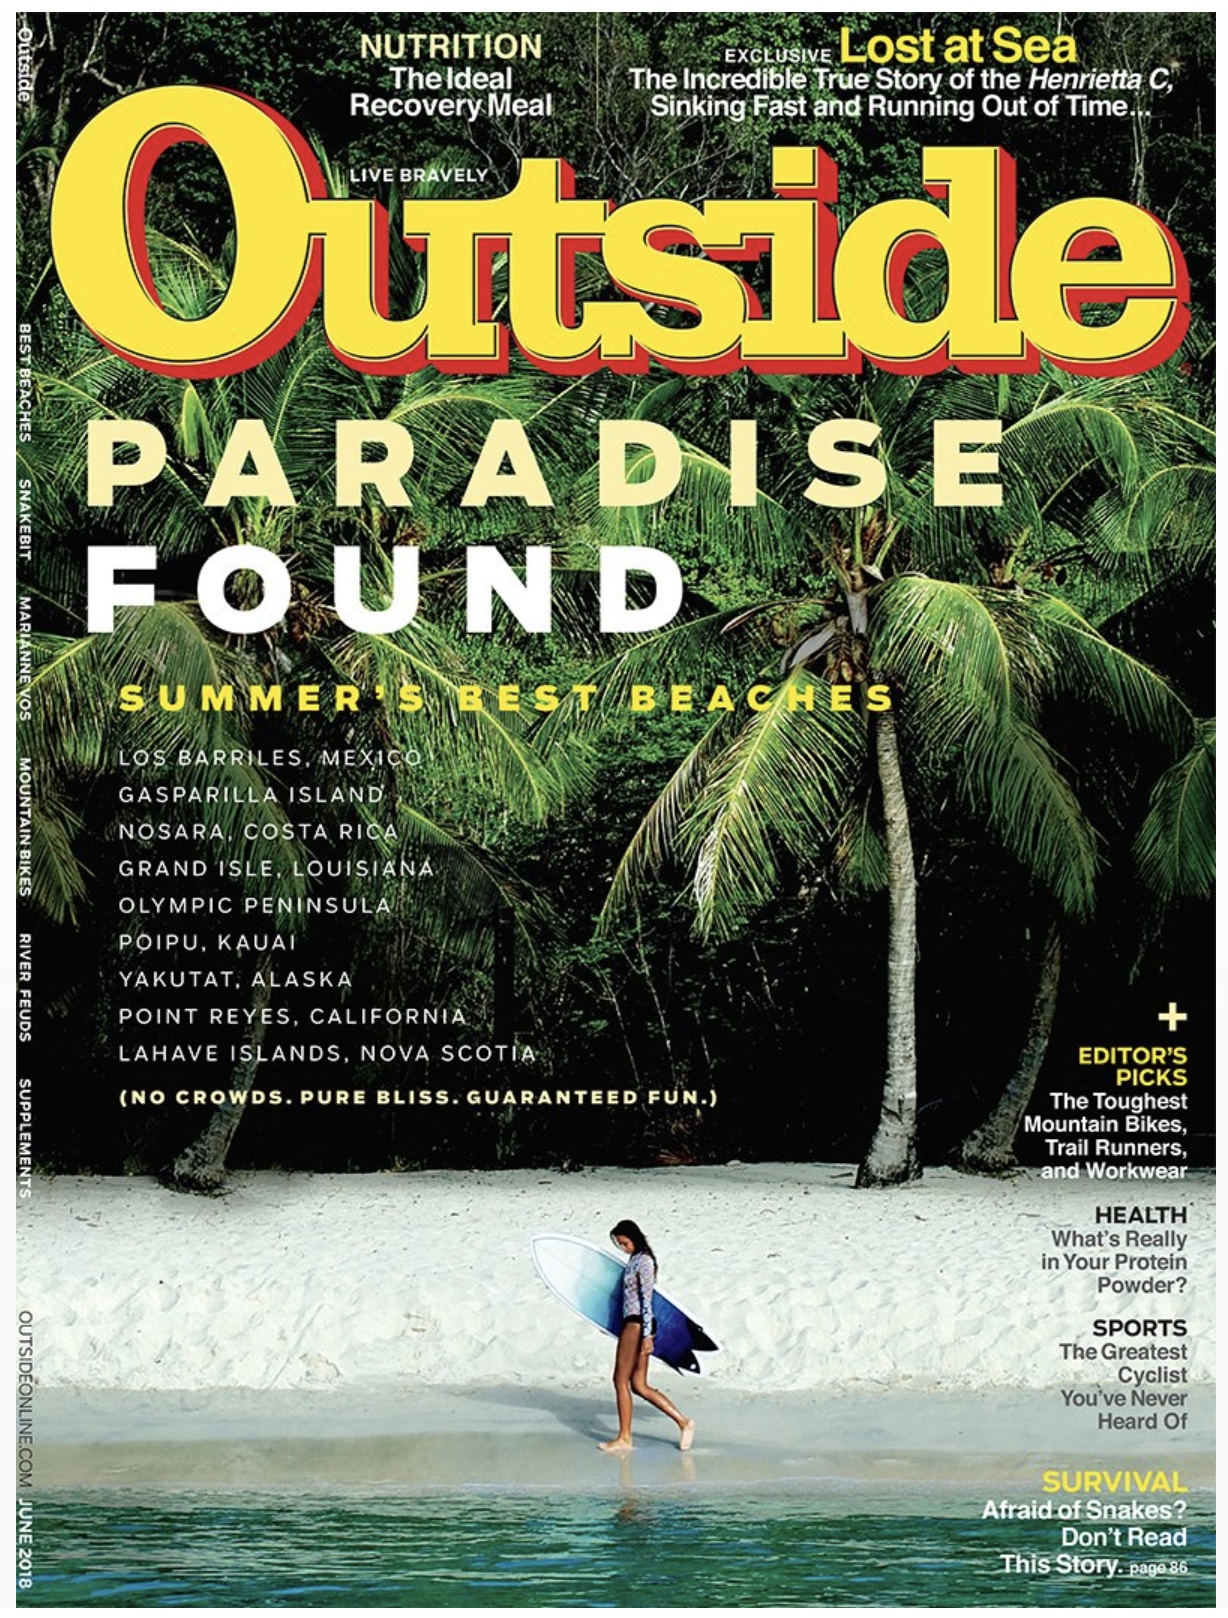 The cover of June 2018's edition of Outside Magazine.